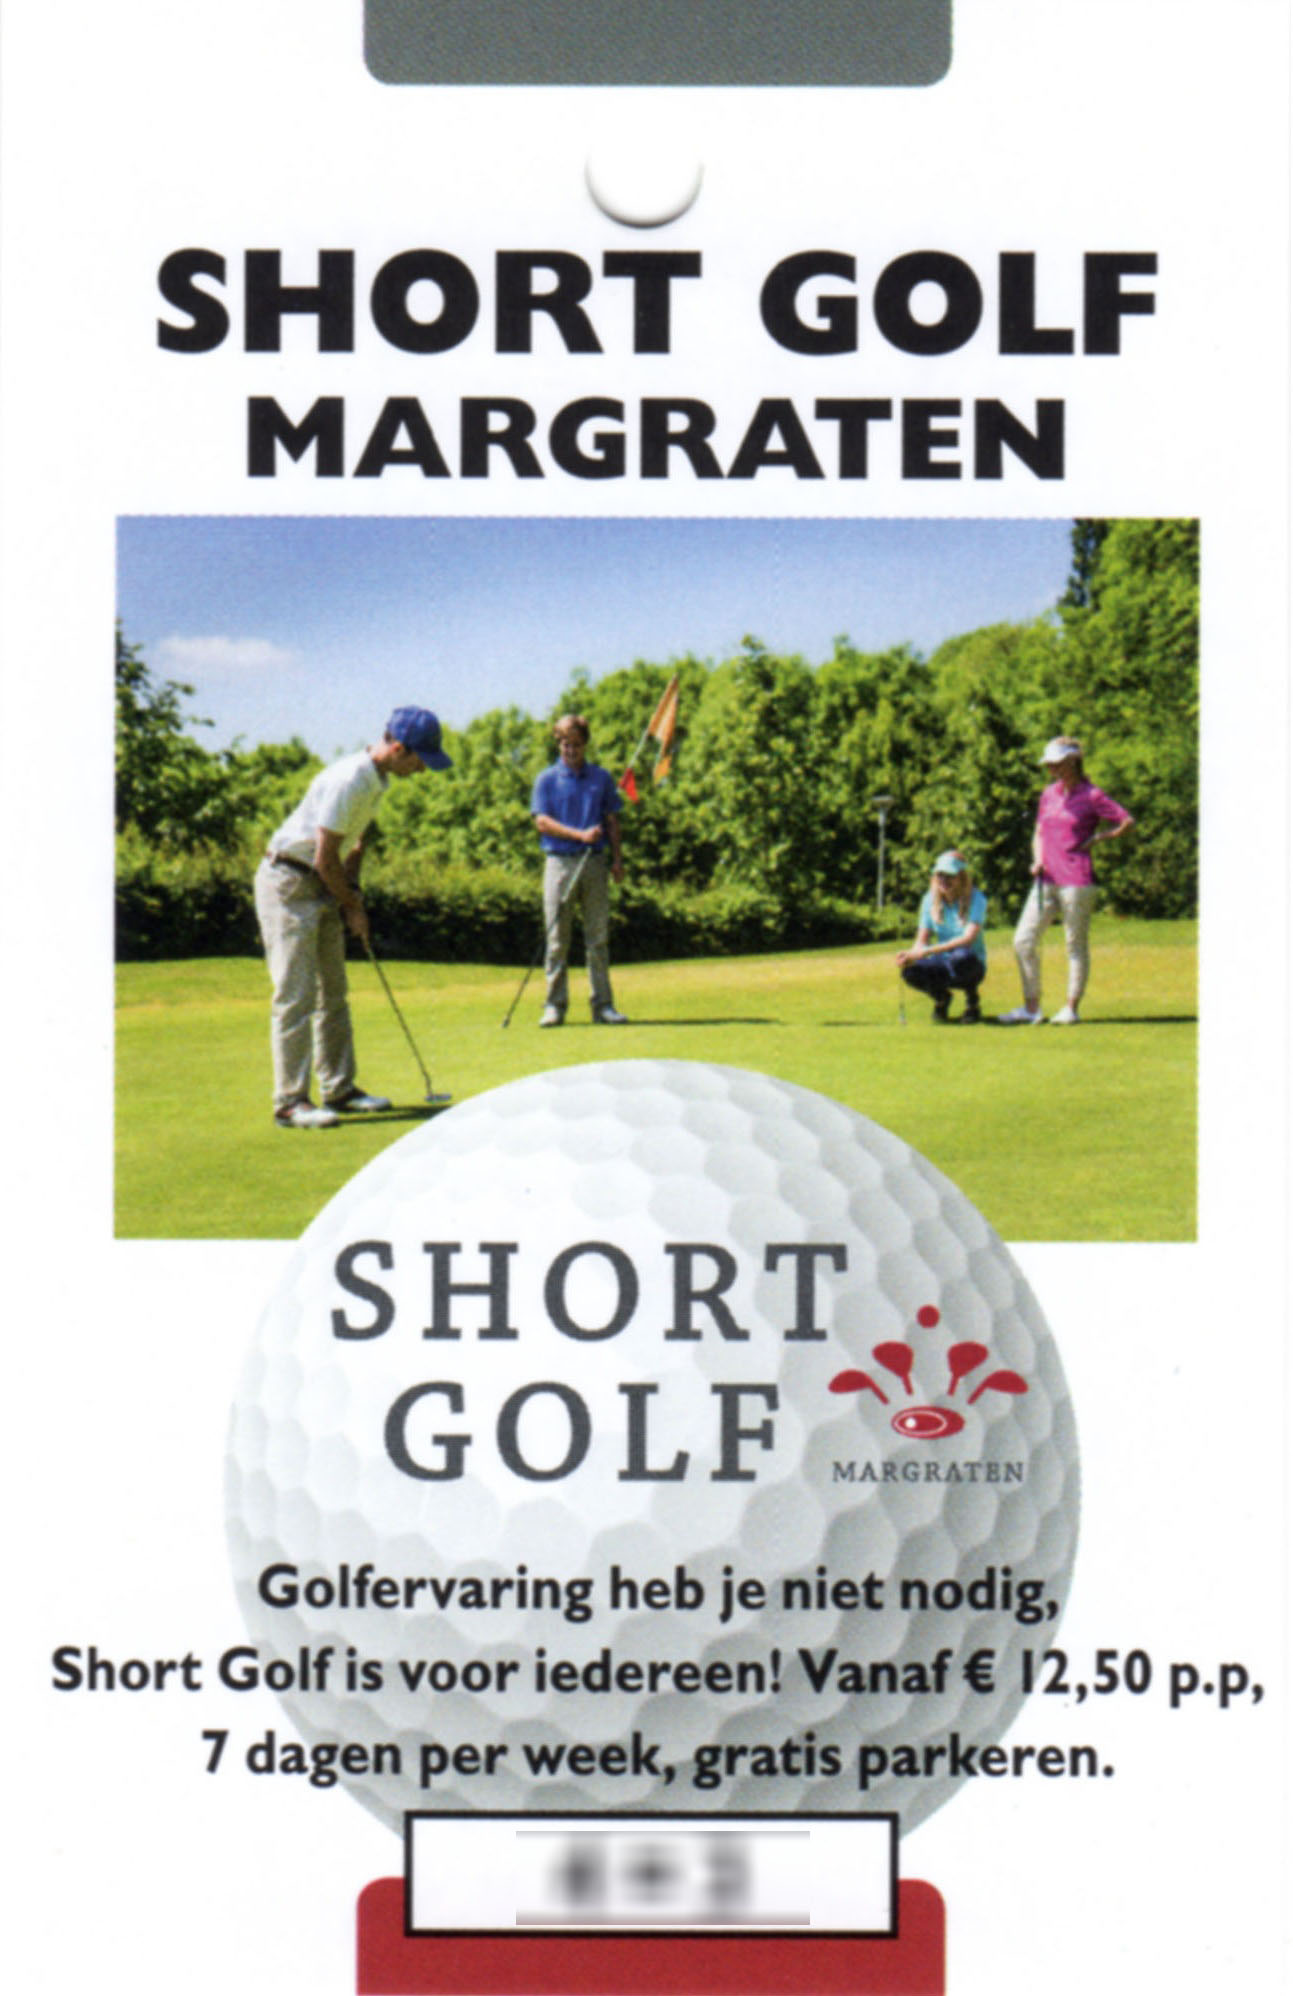 Short golf Margraten